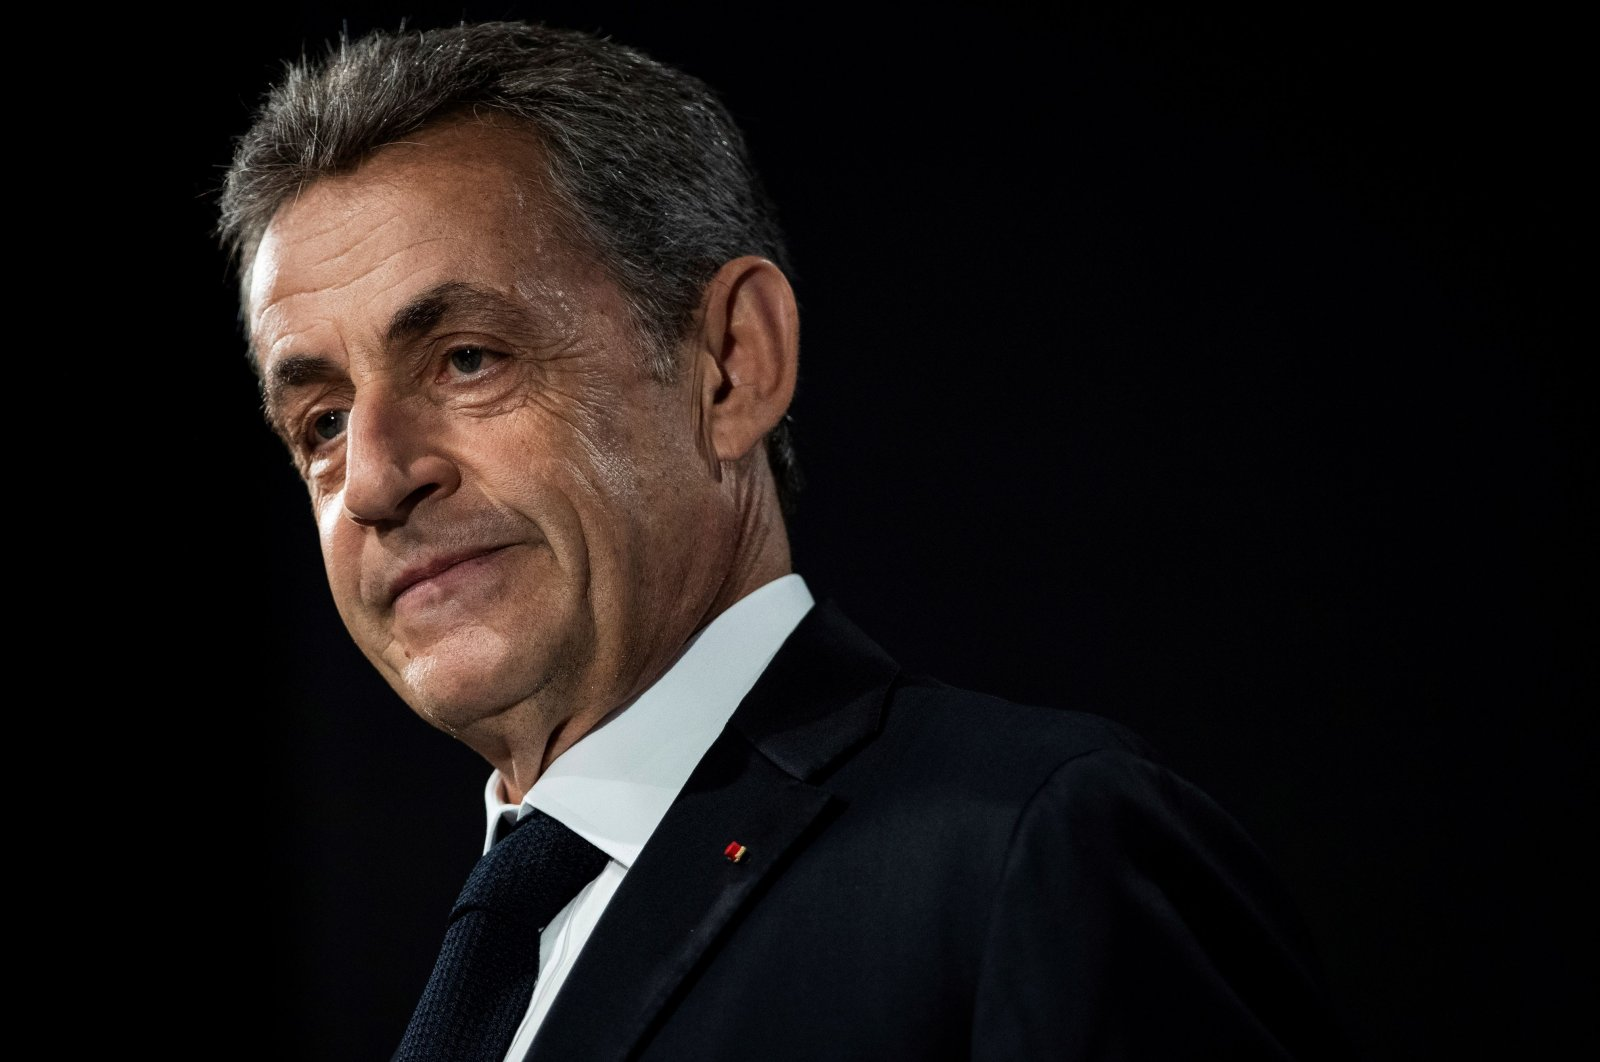 In this file photo taken on June 21, 2019 former French President Nicolas Sarkozy delivers a speech as he attends a conference marking the fiftieth anniversary of the election of Georges Pompidou. (AFP Photo)